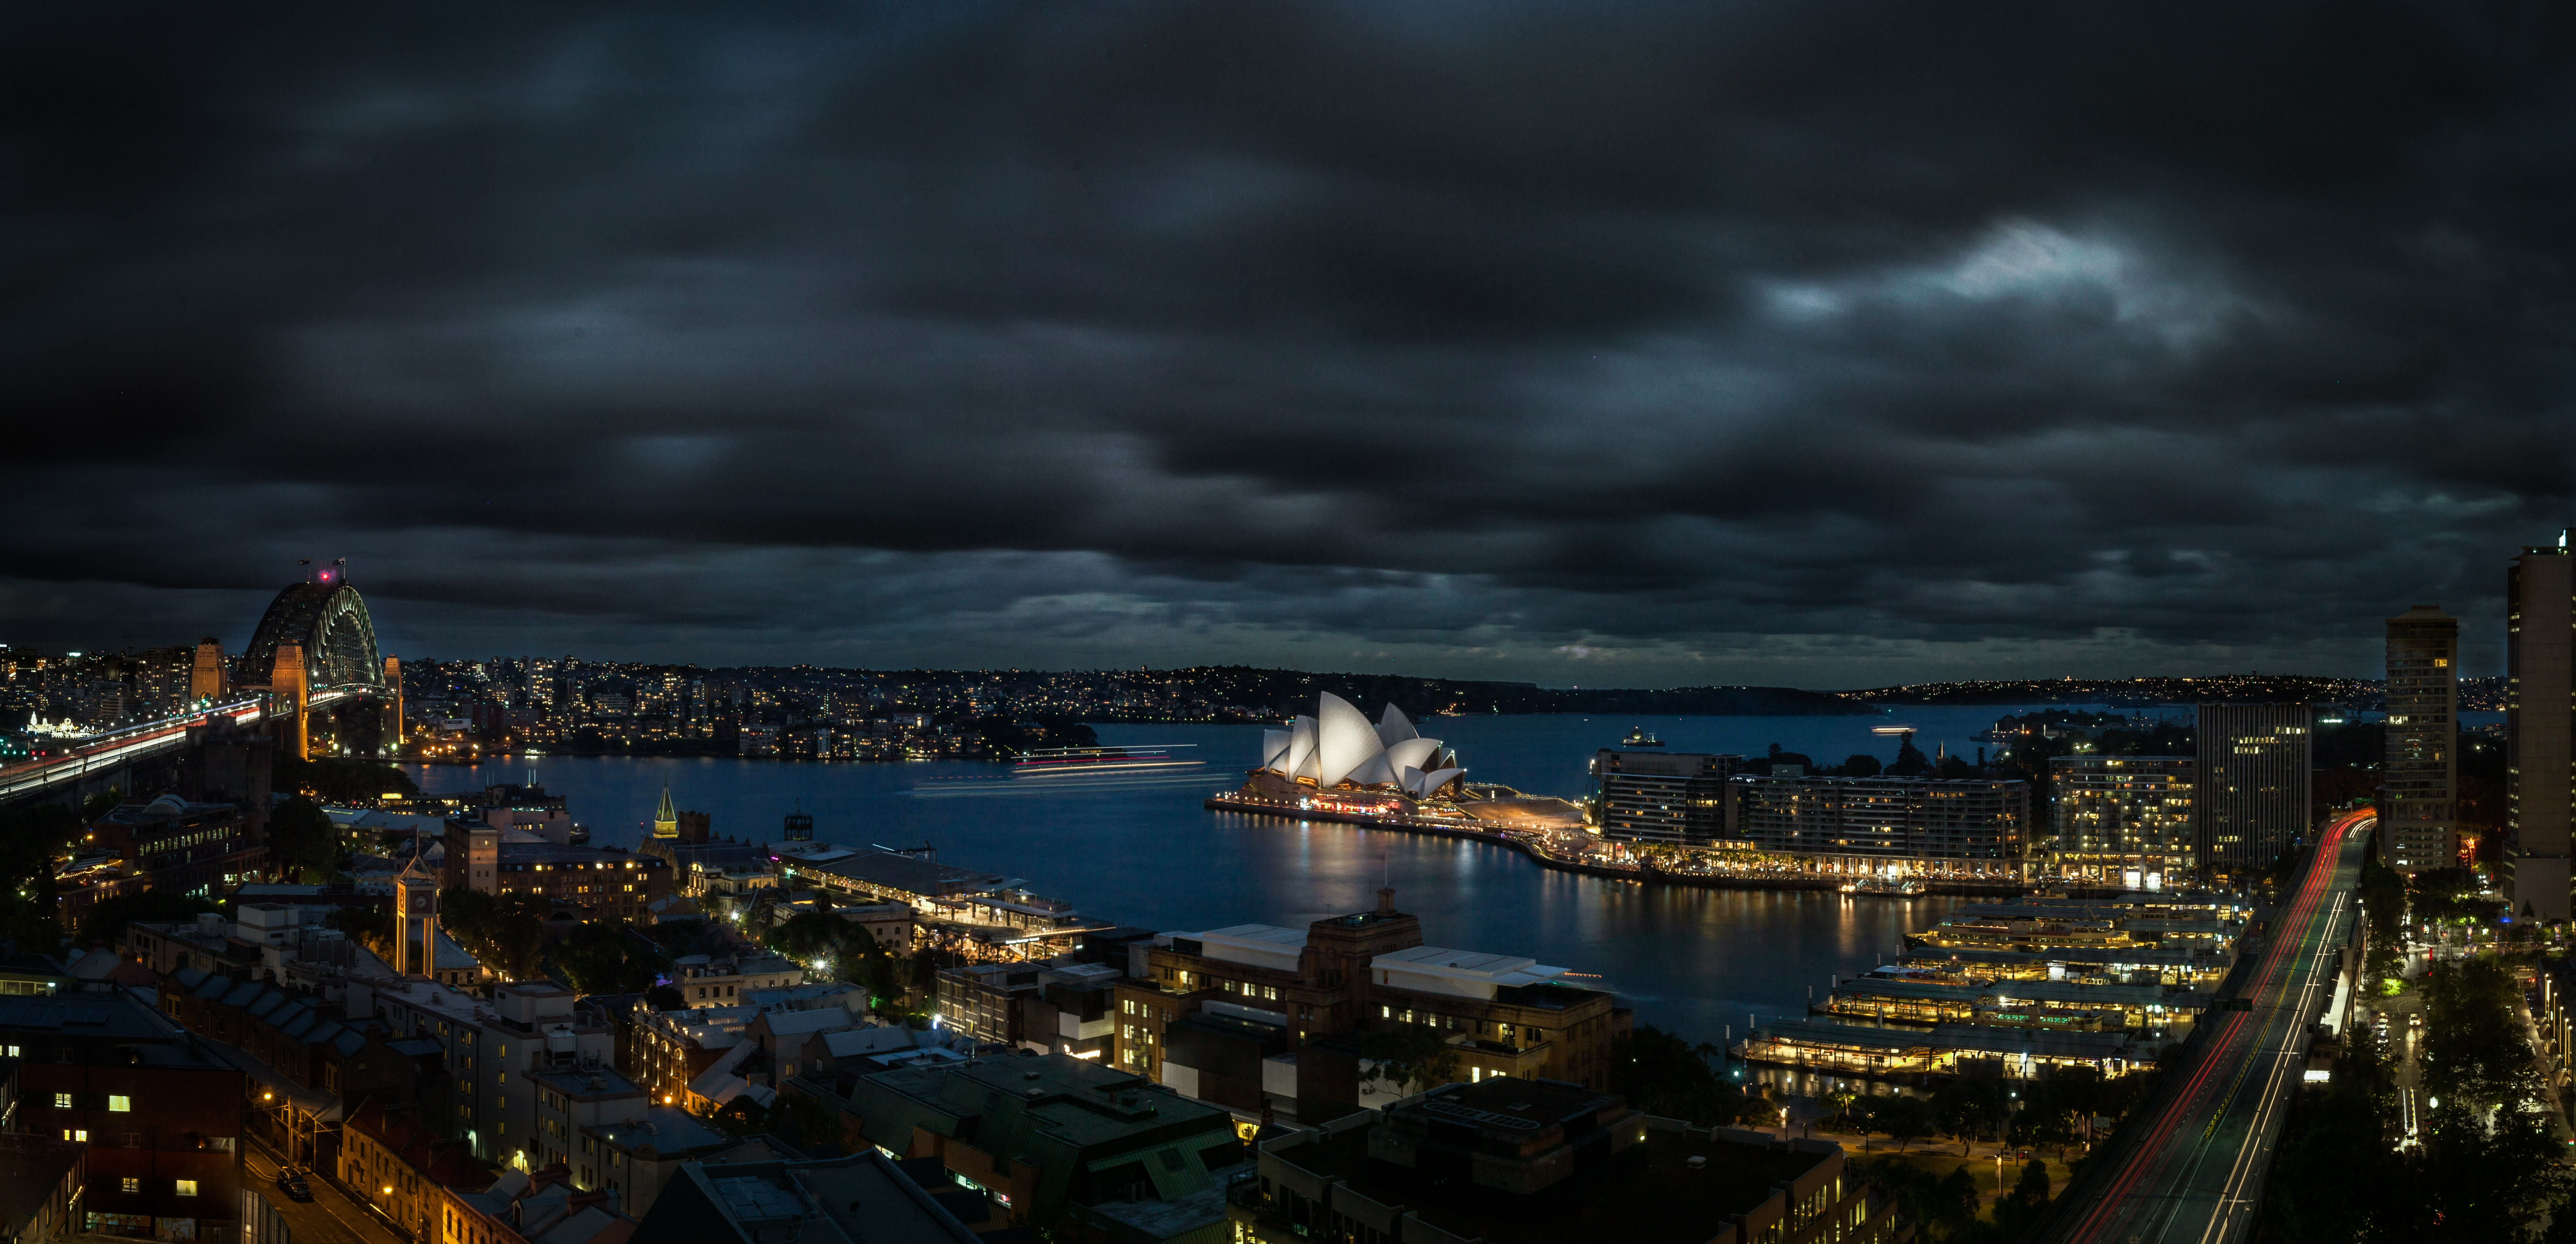 A cityscape shot on a dark cloudy night with Sydney as the backdrop